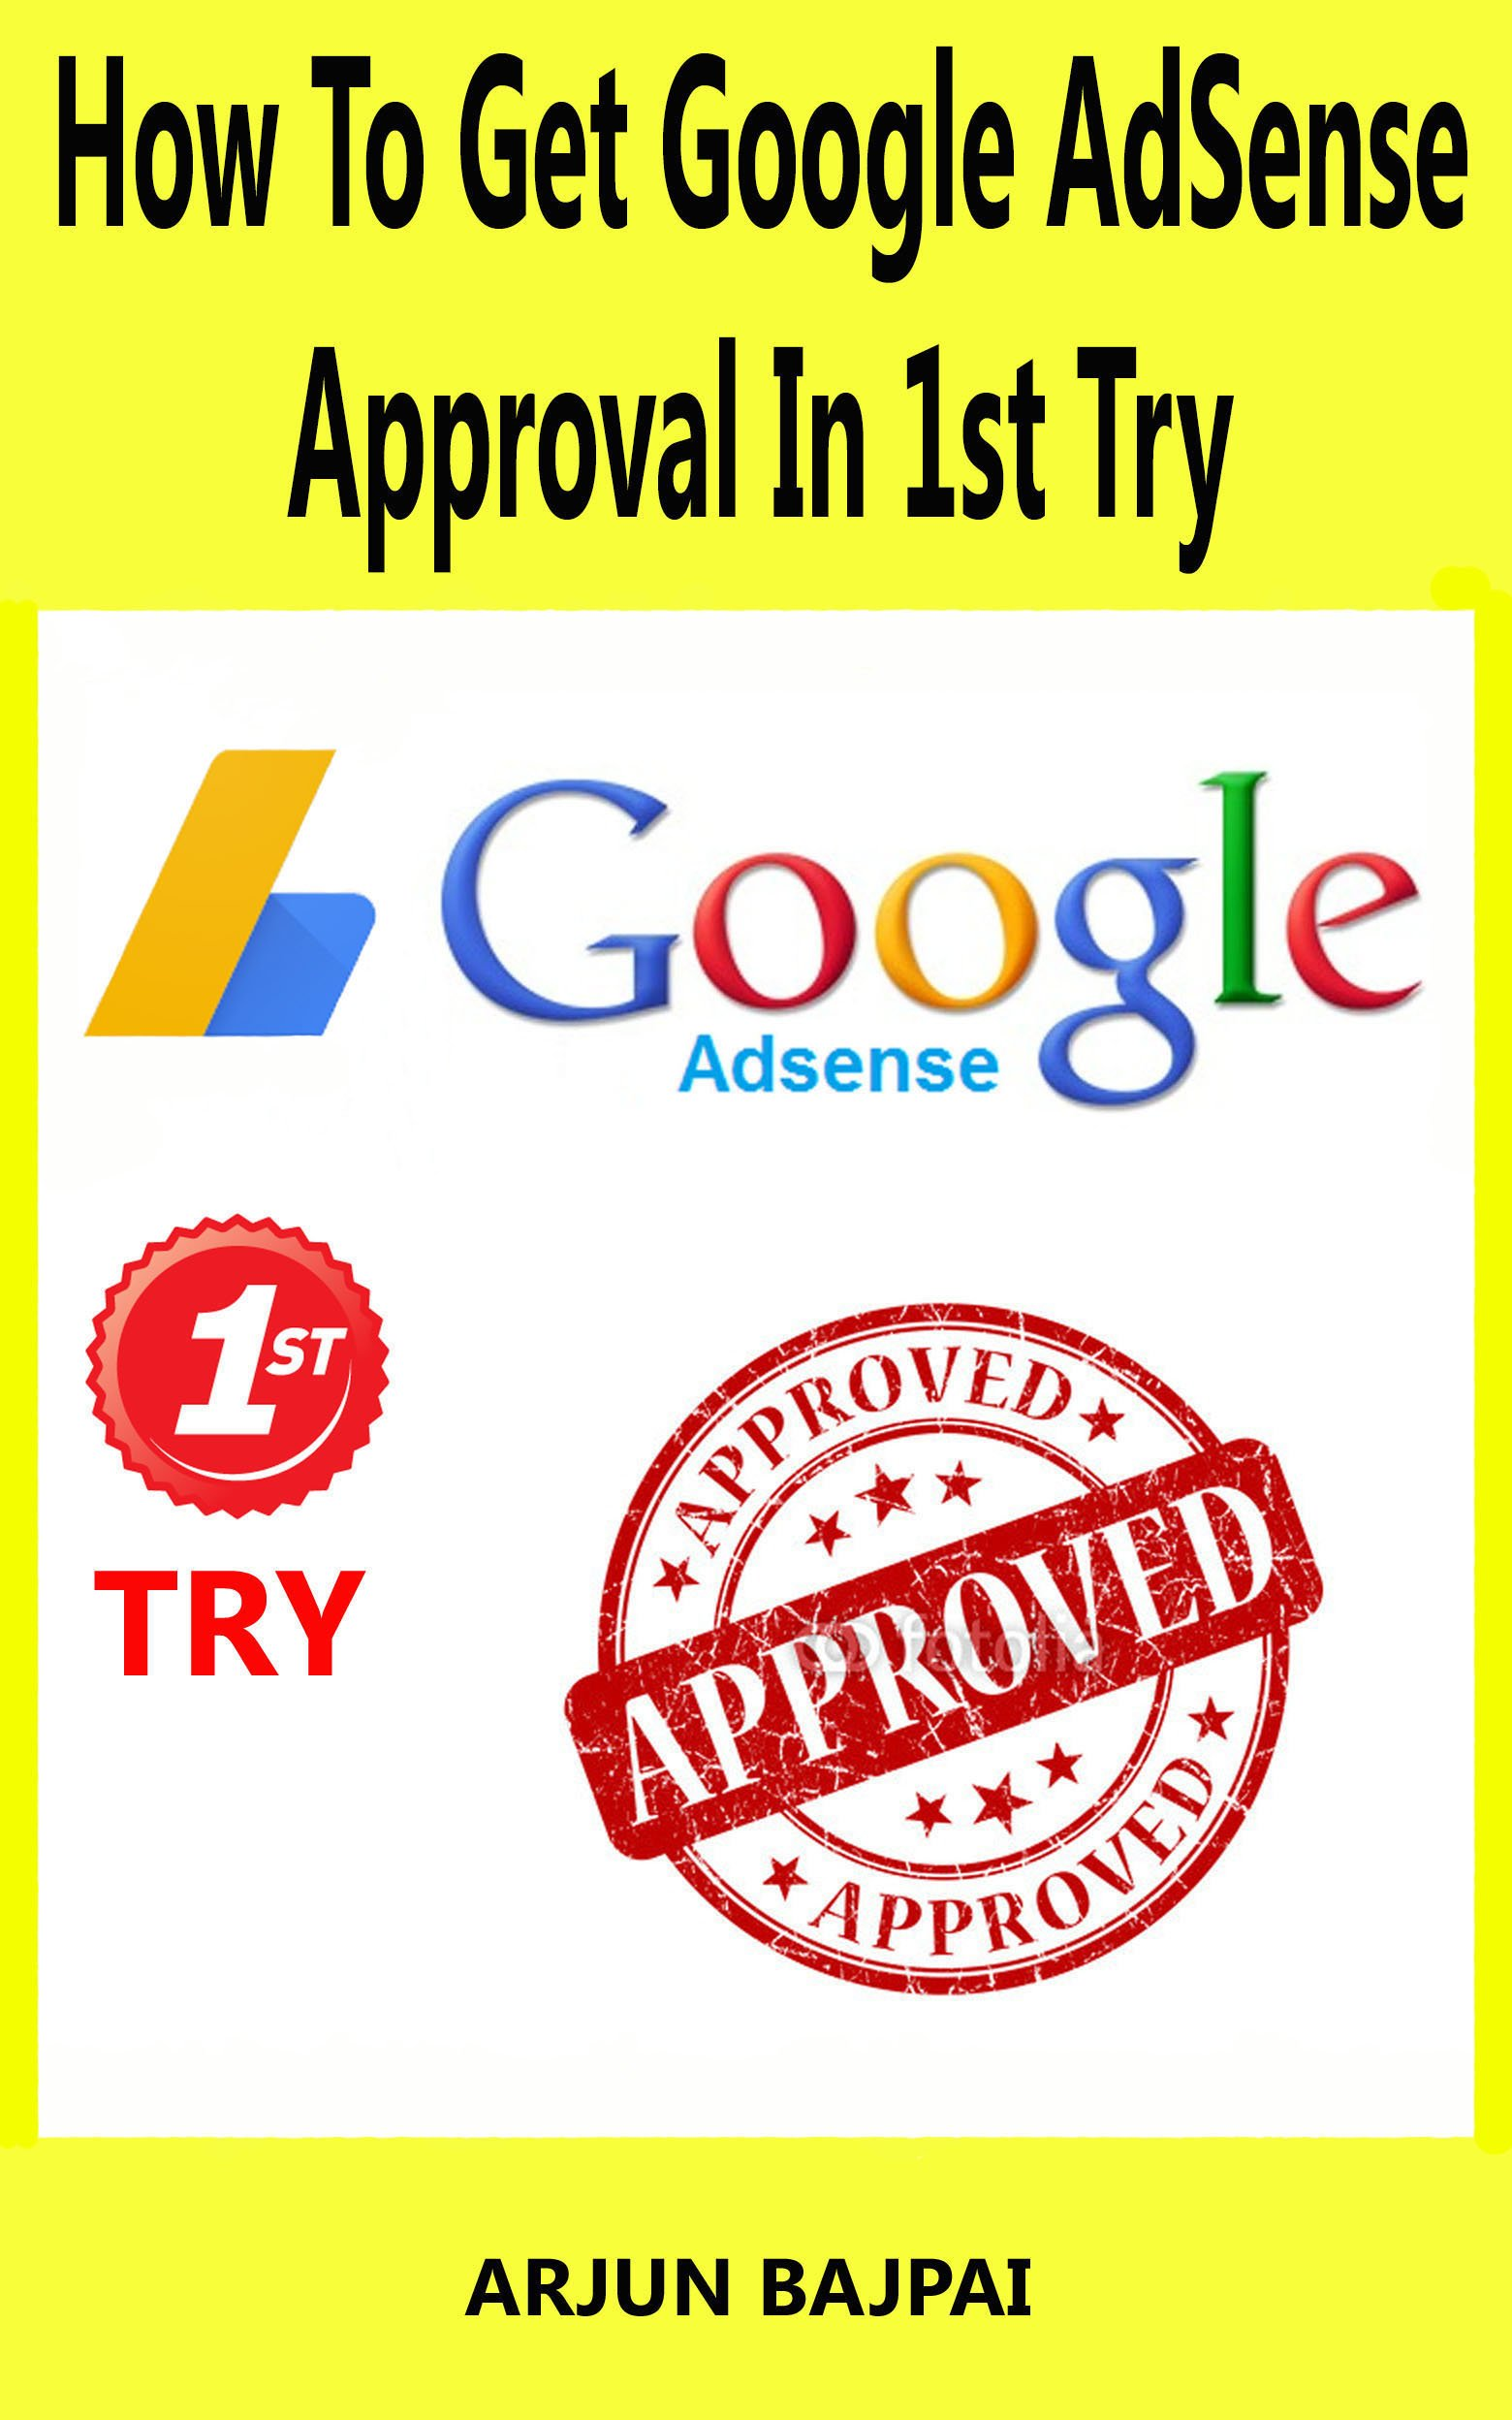 Image OfHow To Get Google Adsense Approval In 1st Try: How I Got My Website Google AdSense Approved In 1st Try (English Edition)